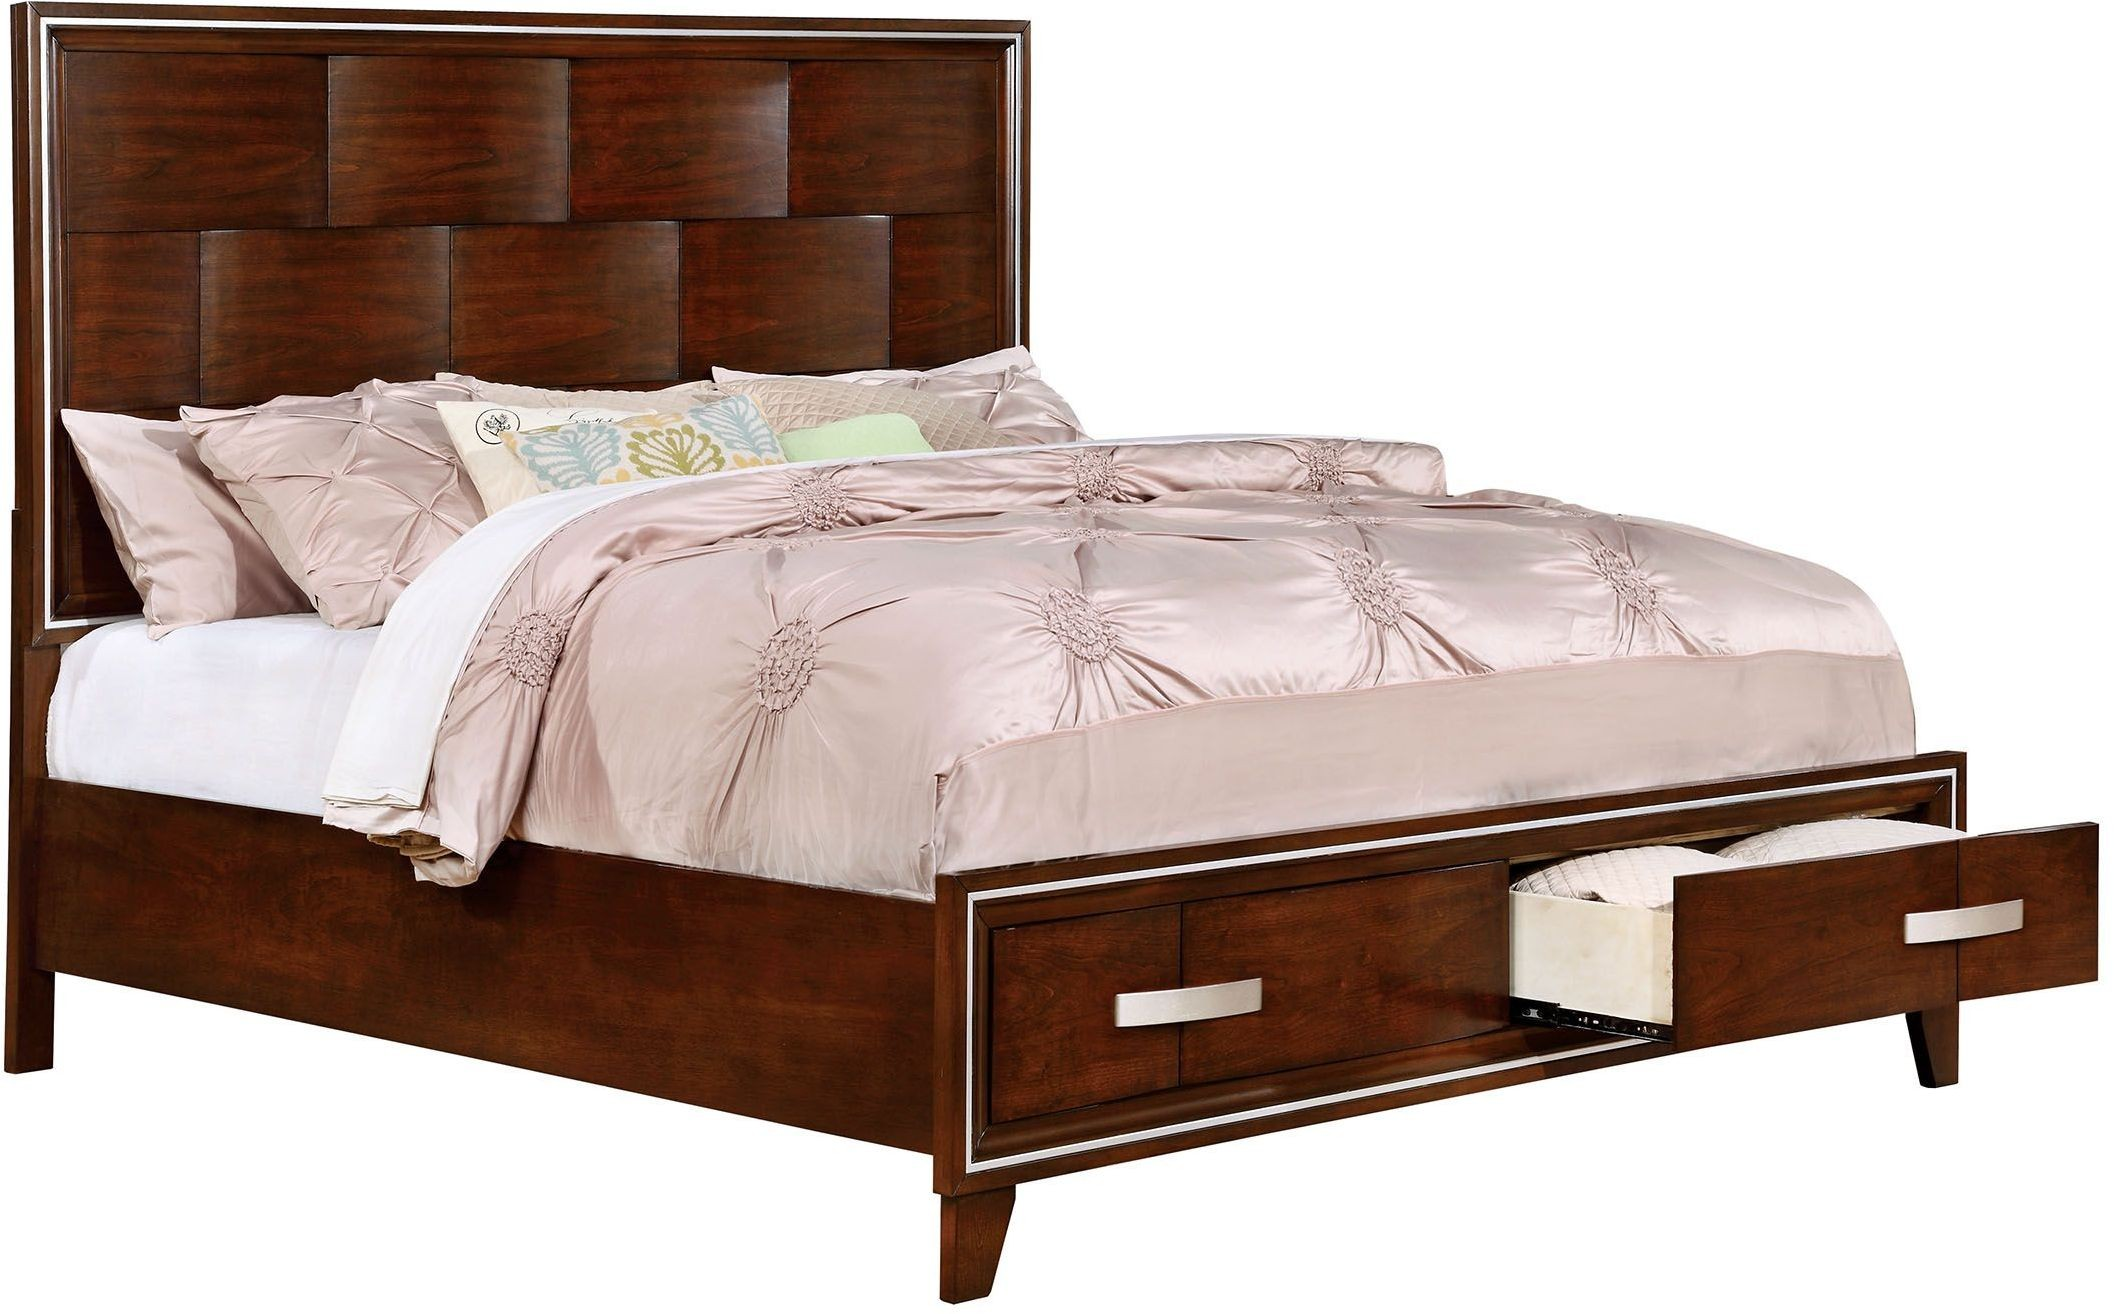 Bedroom Cal King Bed Modern Brown Cherry Wood Hot Sectionals